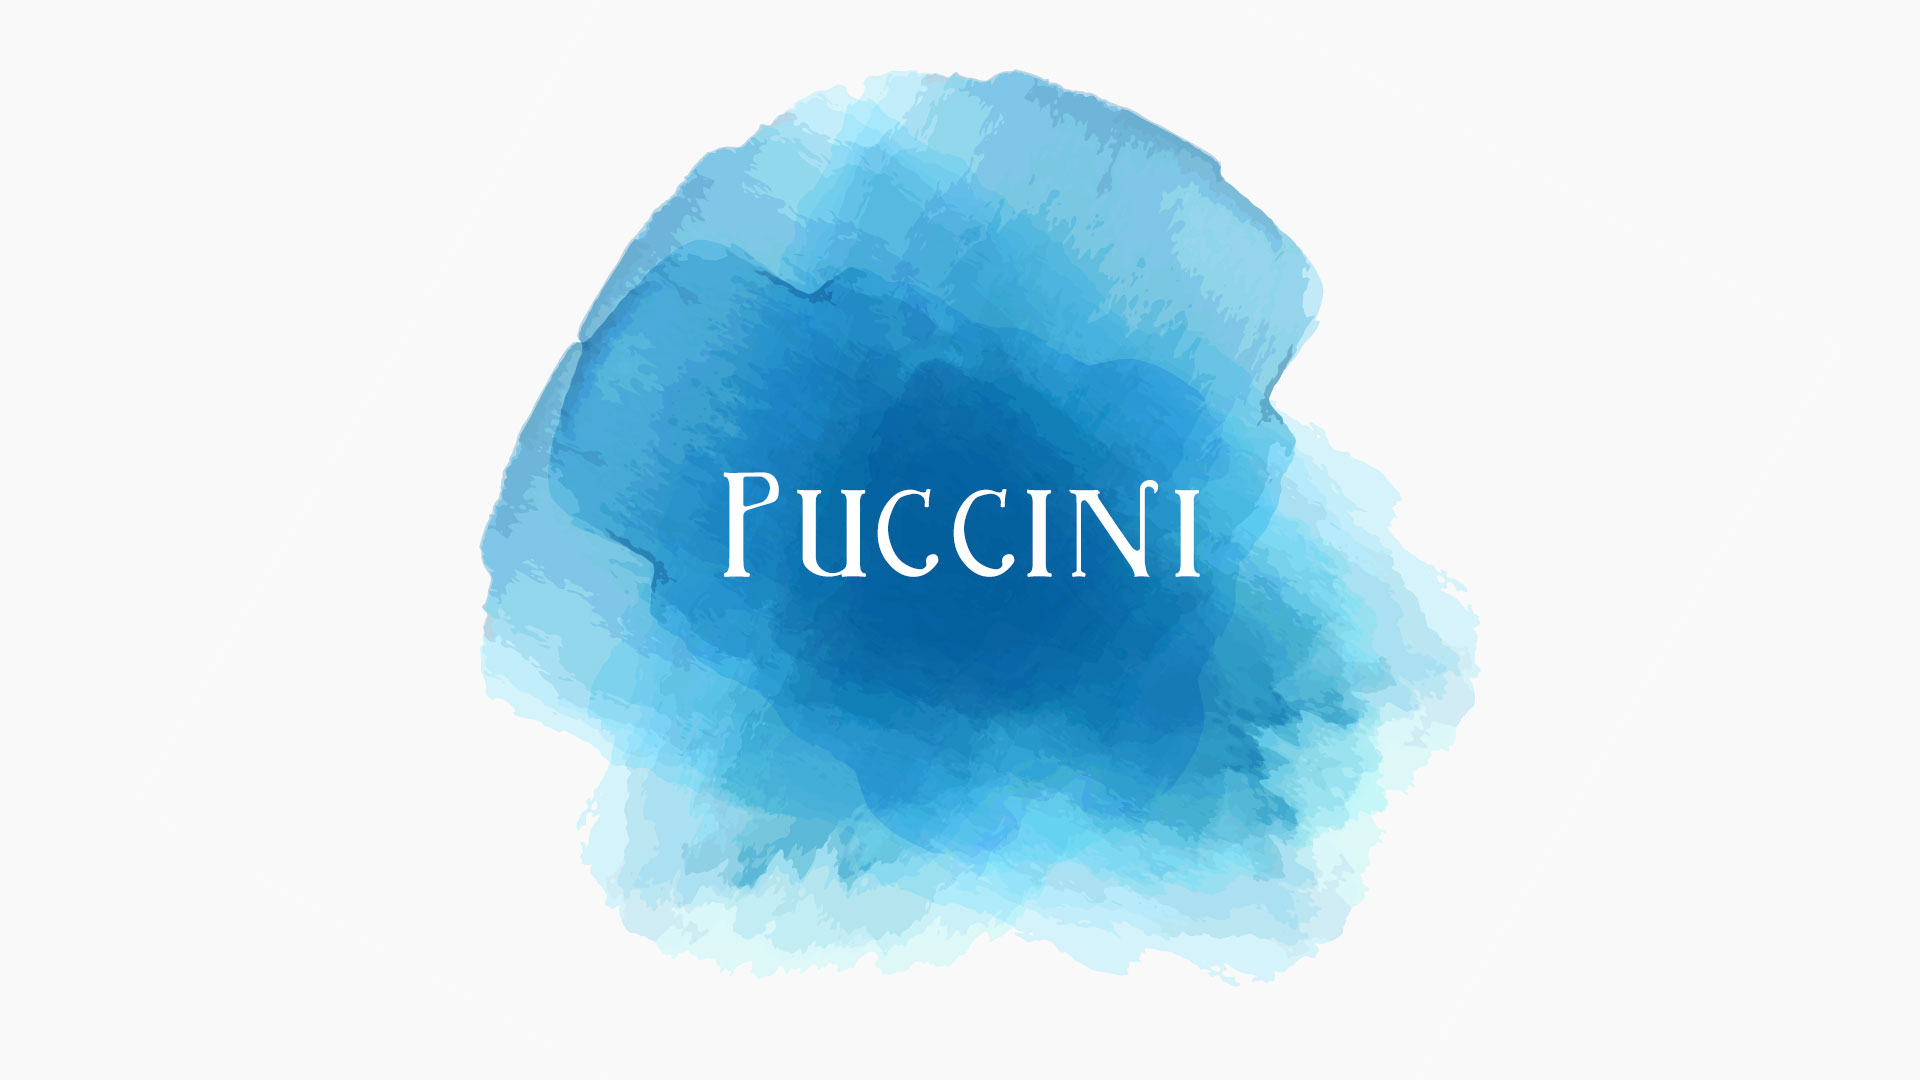 Puccinifest